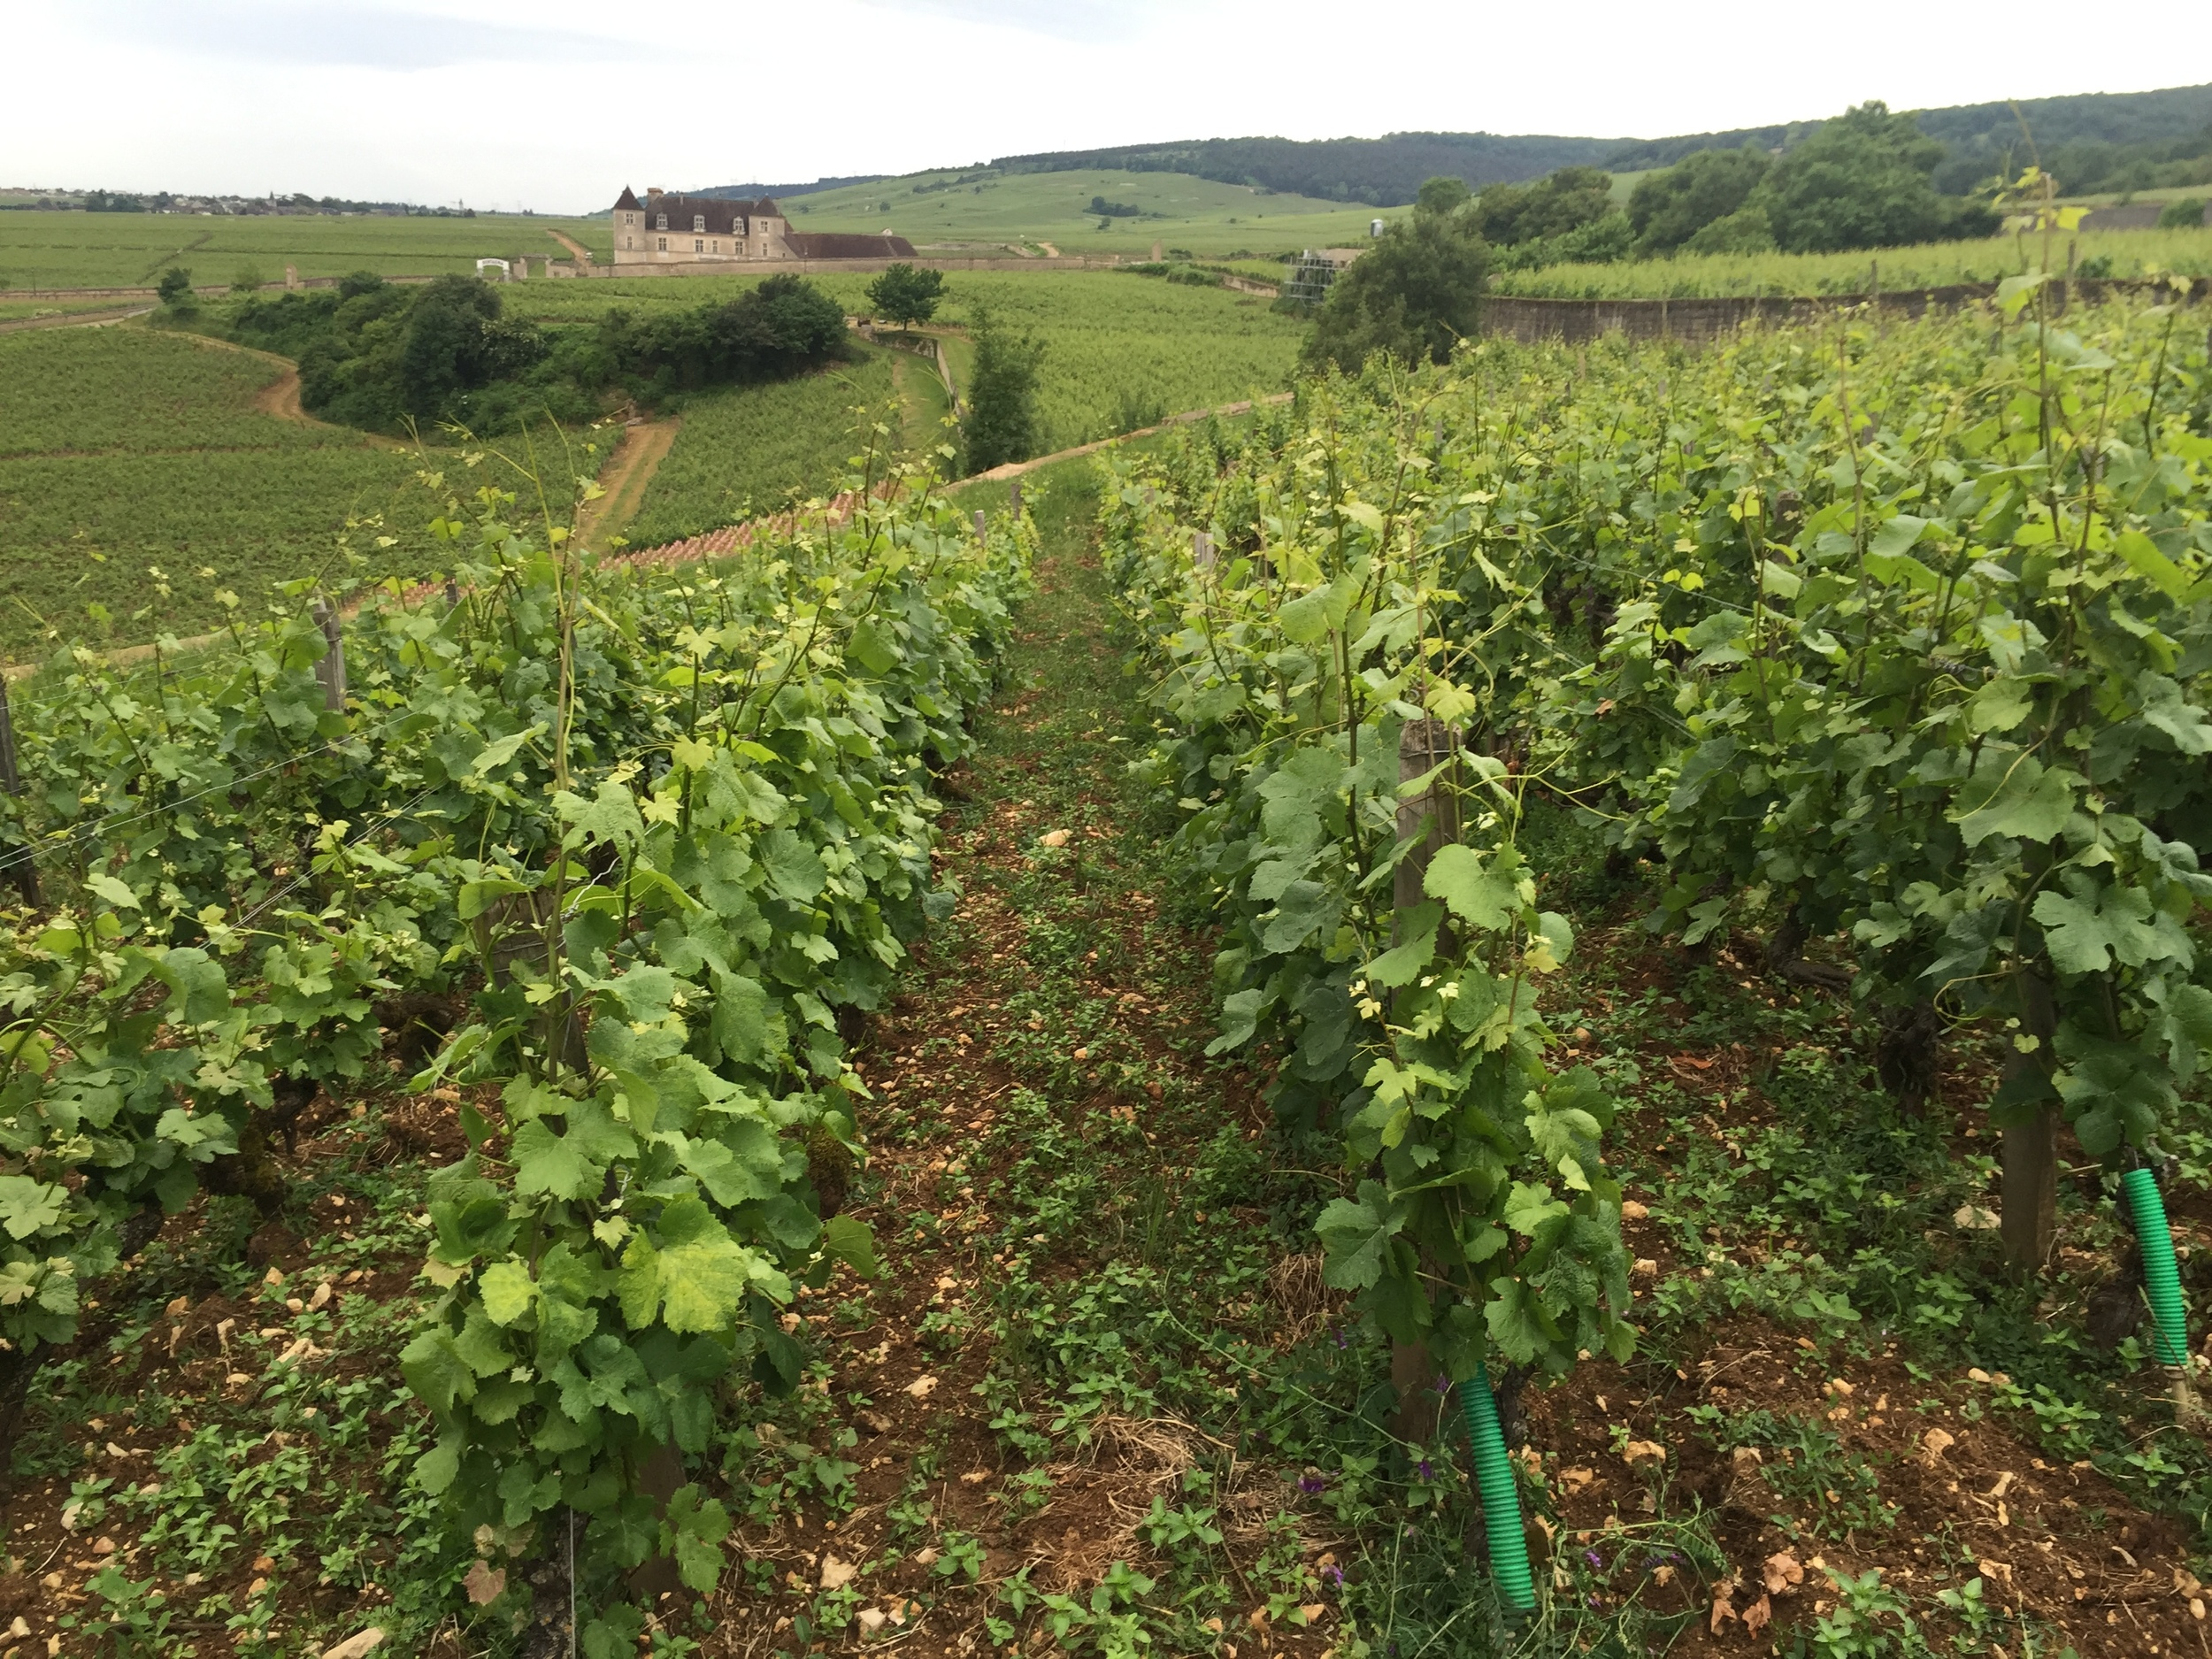 The center of my wine universe - Chambolle-Musigny les Amoureuses